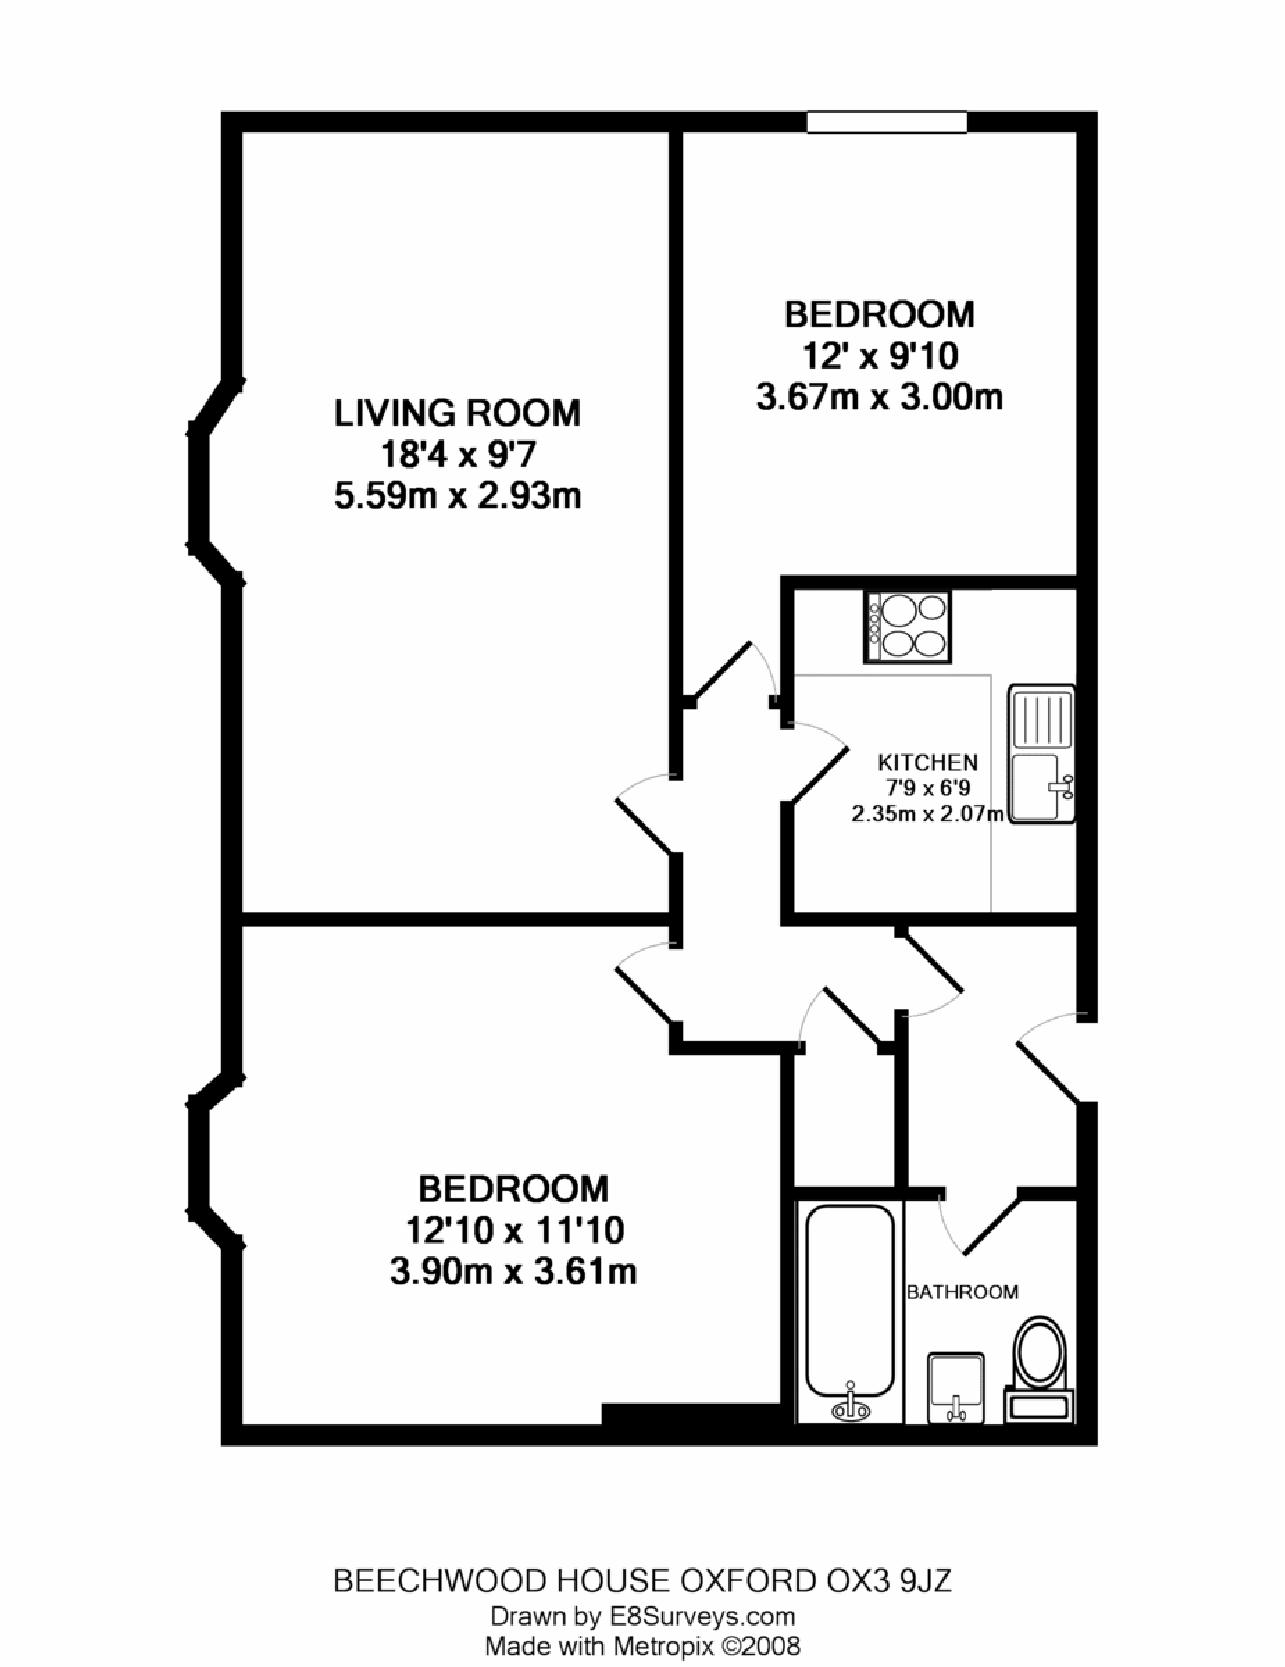 Beechwood house headington ox3 ref 25010 oxford for 4 bedroom flat floor plan